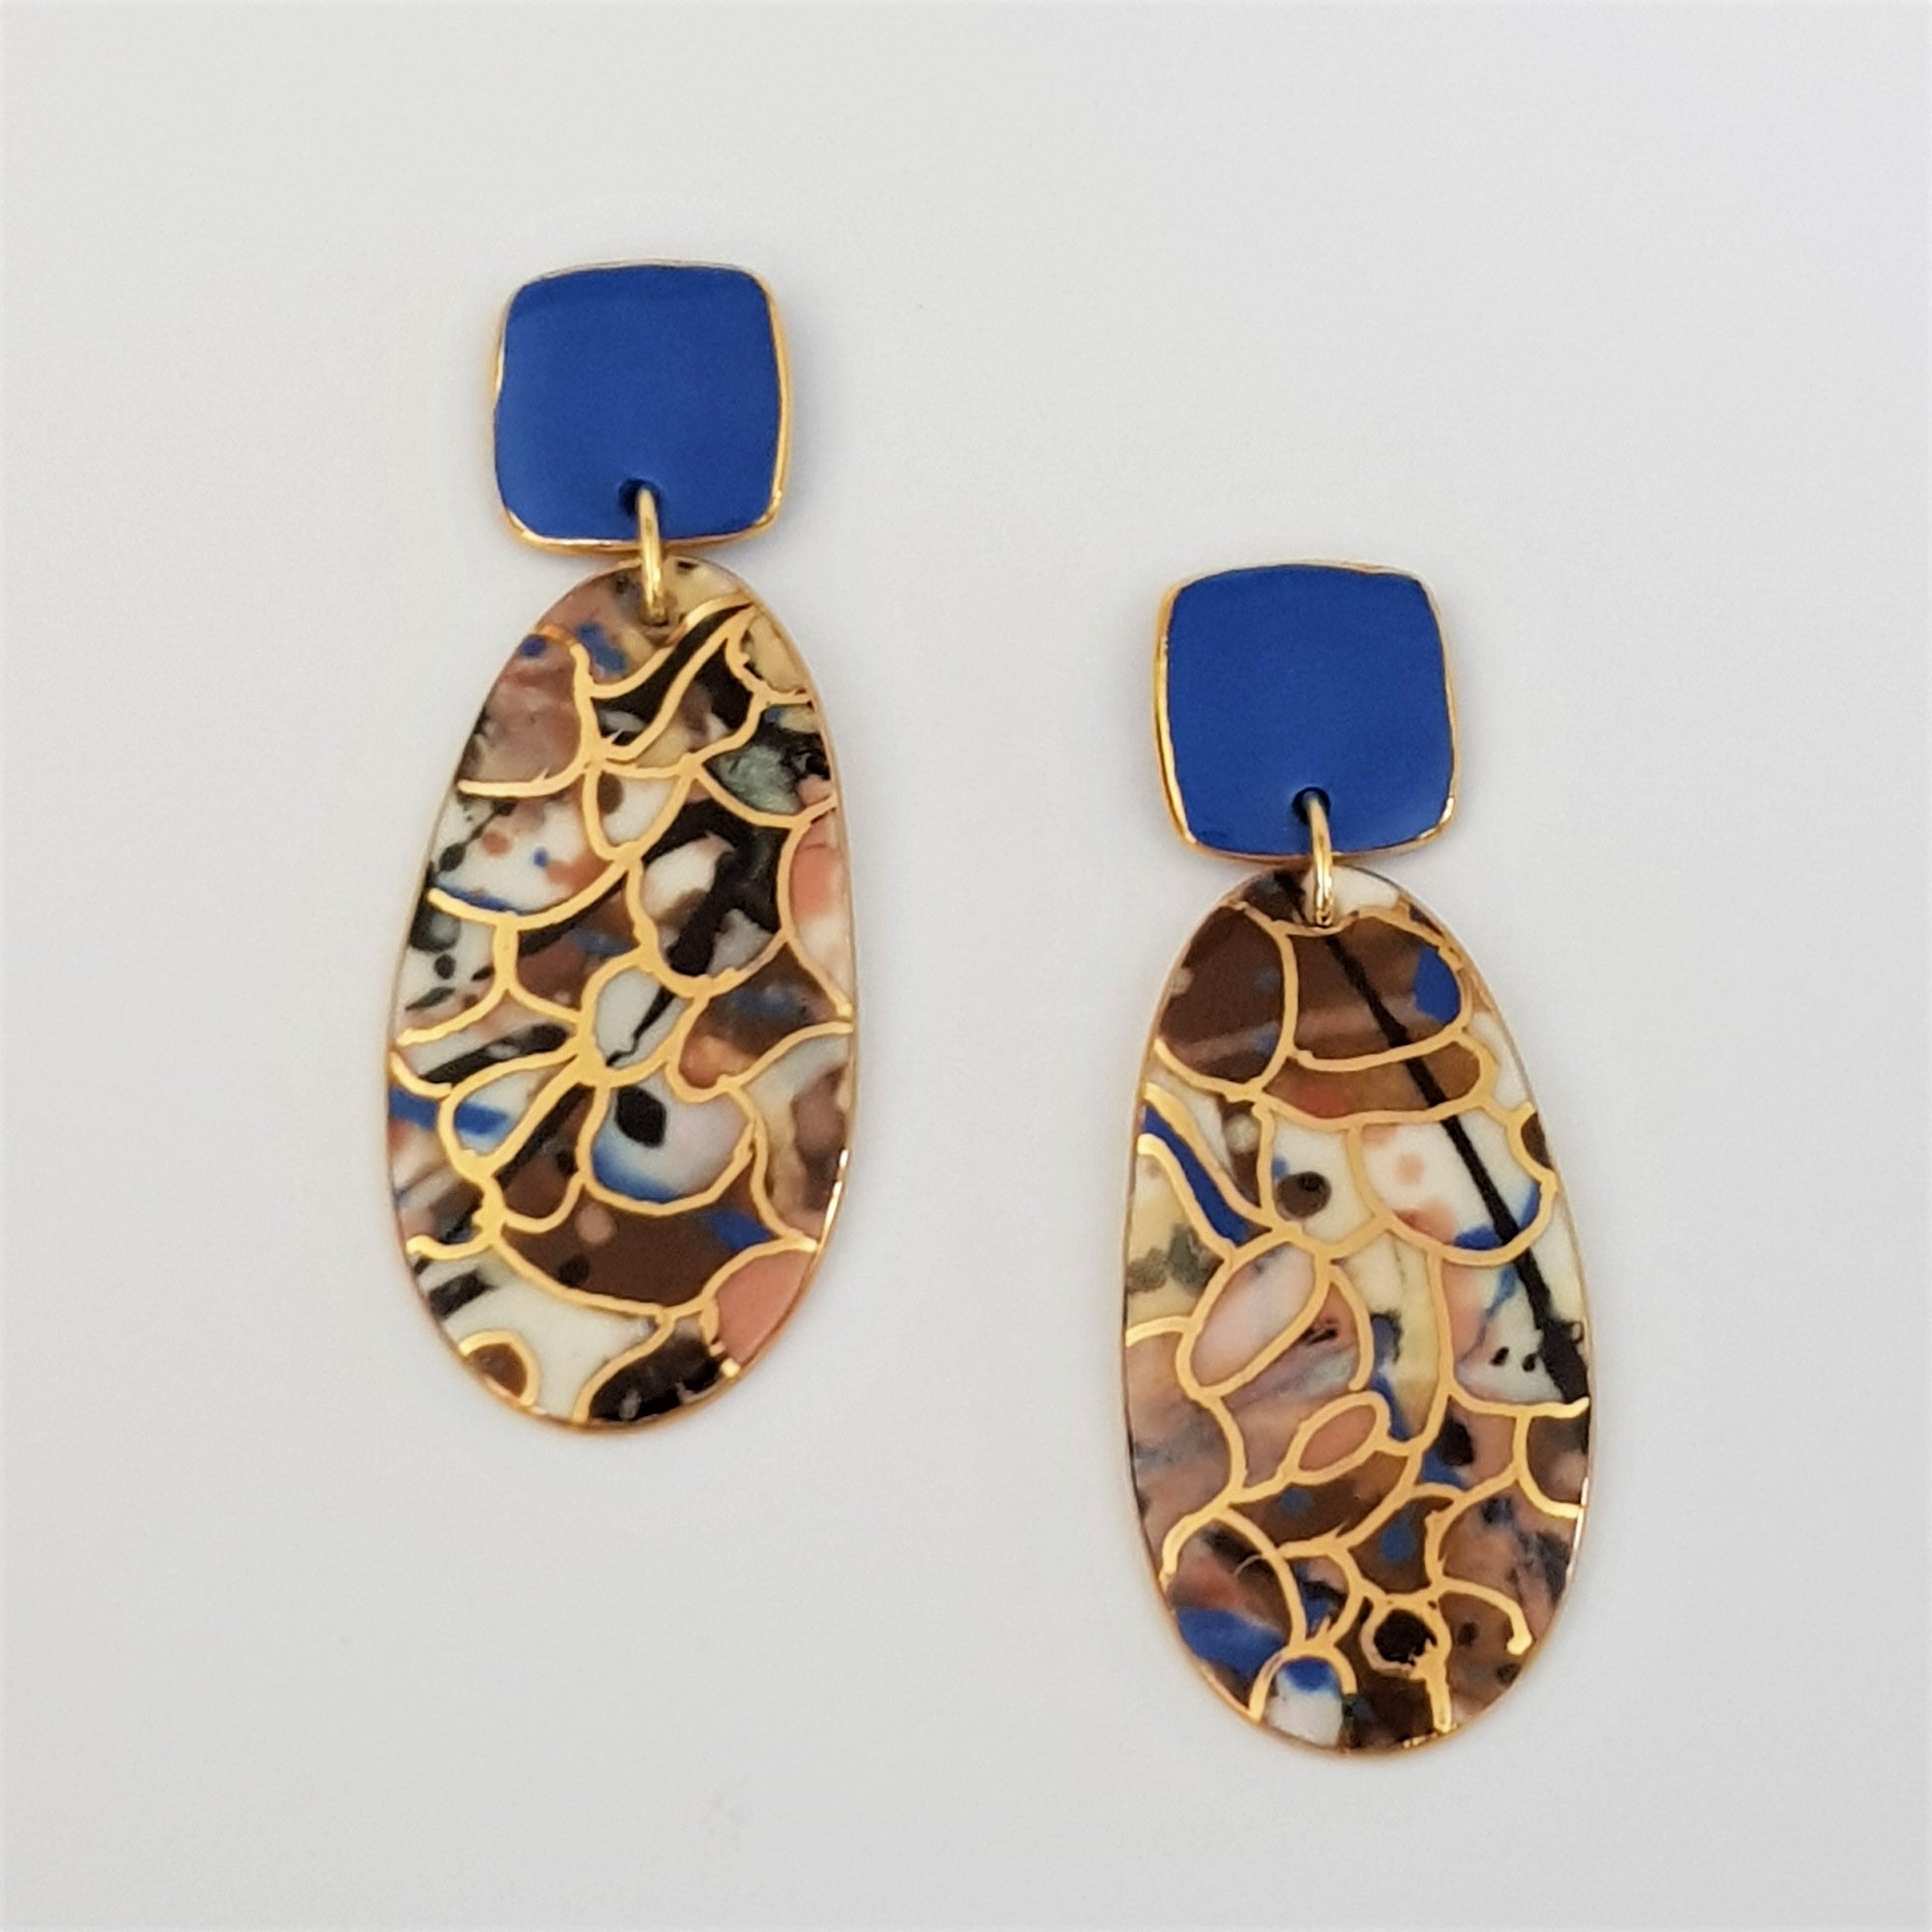 Double drops earrings. Square blue tops and earthy tones with gold.